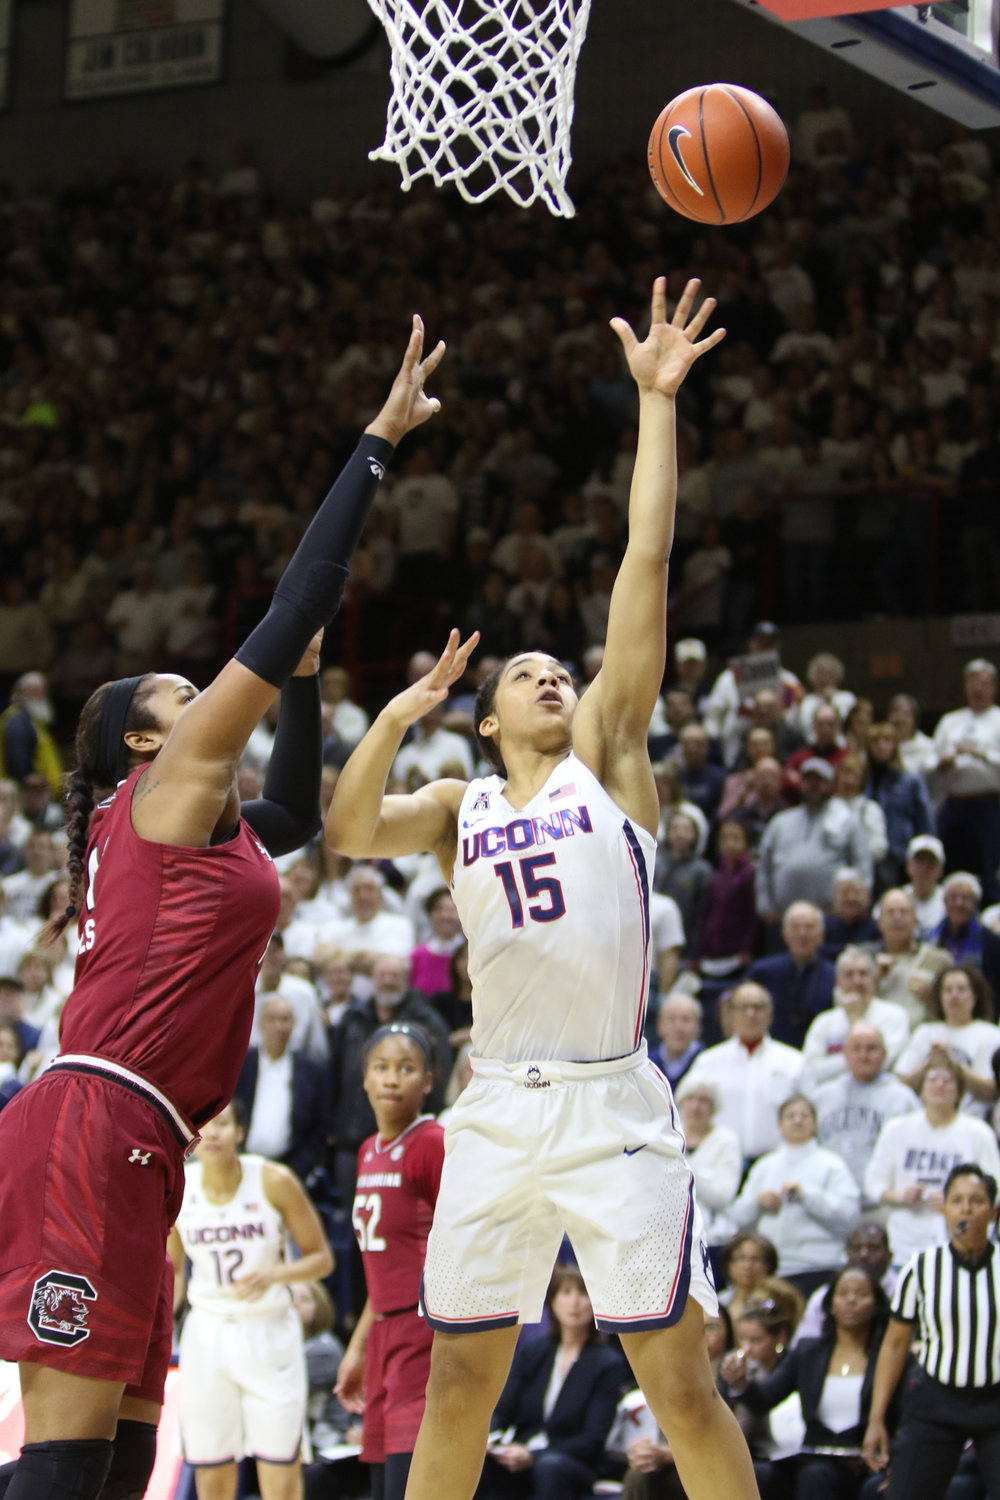 Gabby Williams floats a basket over a South Carolina defender during the Huskies 66-55 victory over the Gamecocks on Feb. 13, 2017.